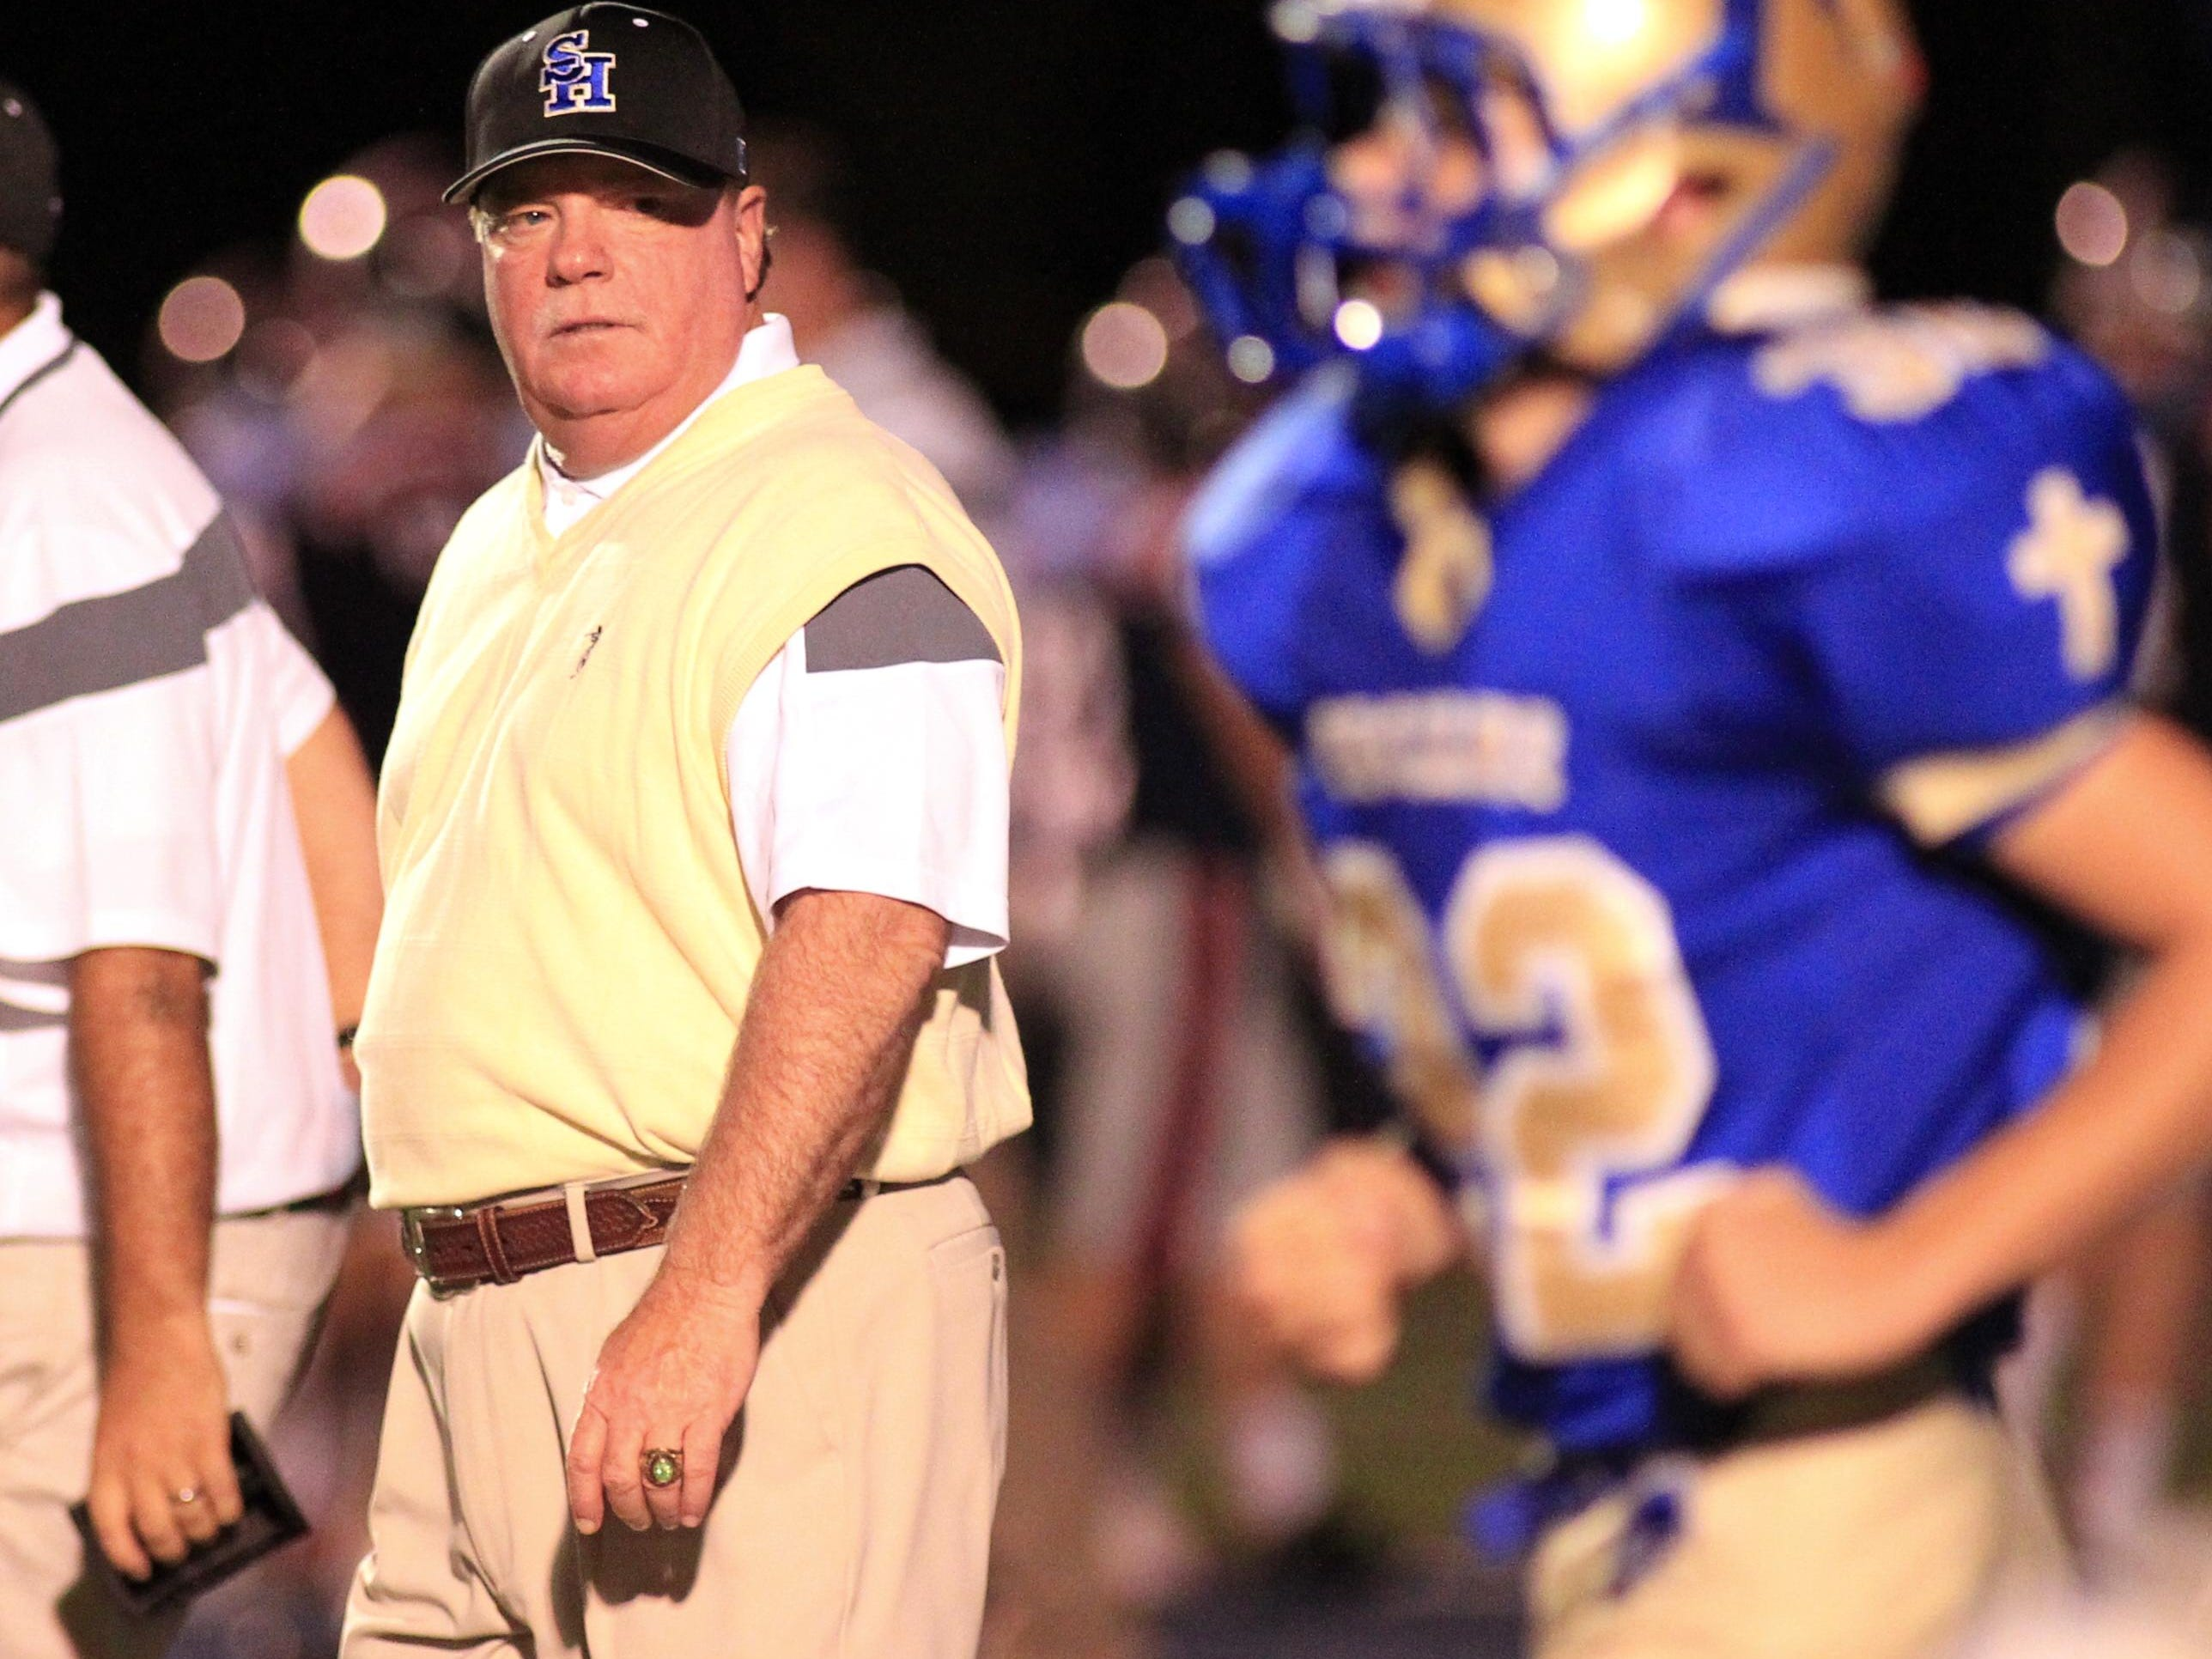 Gary Adkins announced last week that he was leaving Sacred Heart to become athletic director and head football coach at Abbeville High.